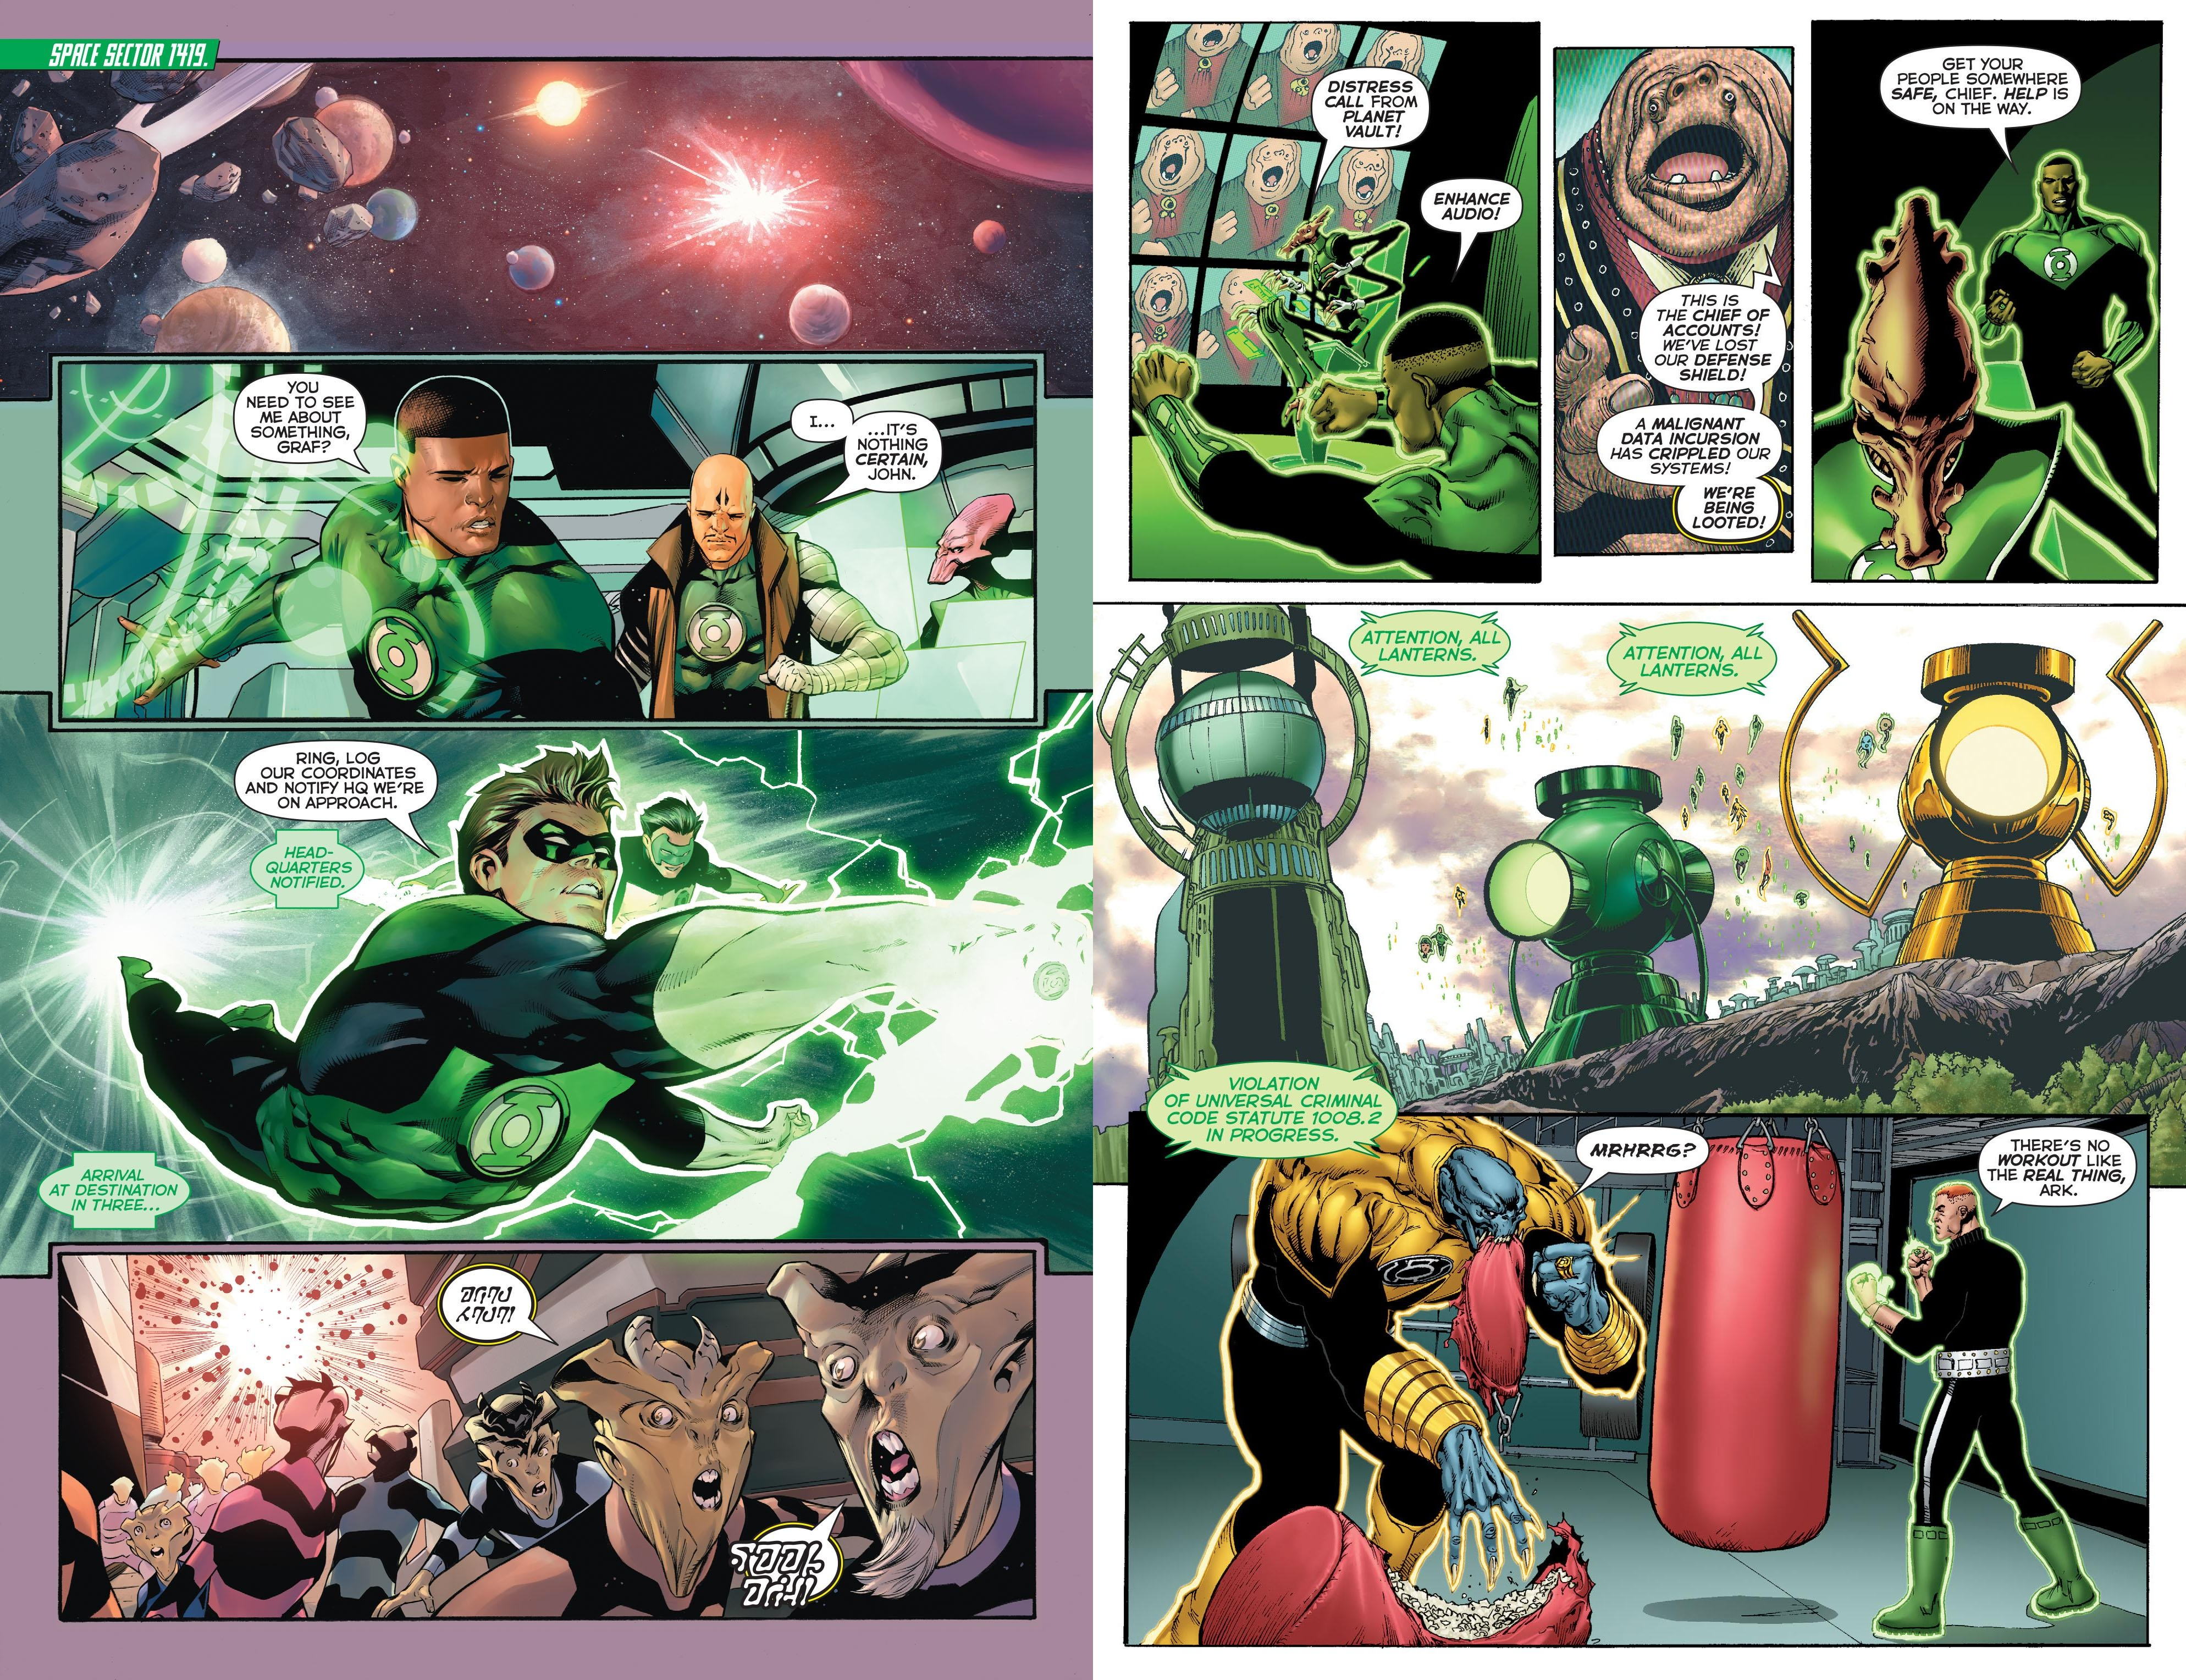 Hal Jordan and the Green Lantern Corps - Fracture review